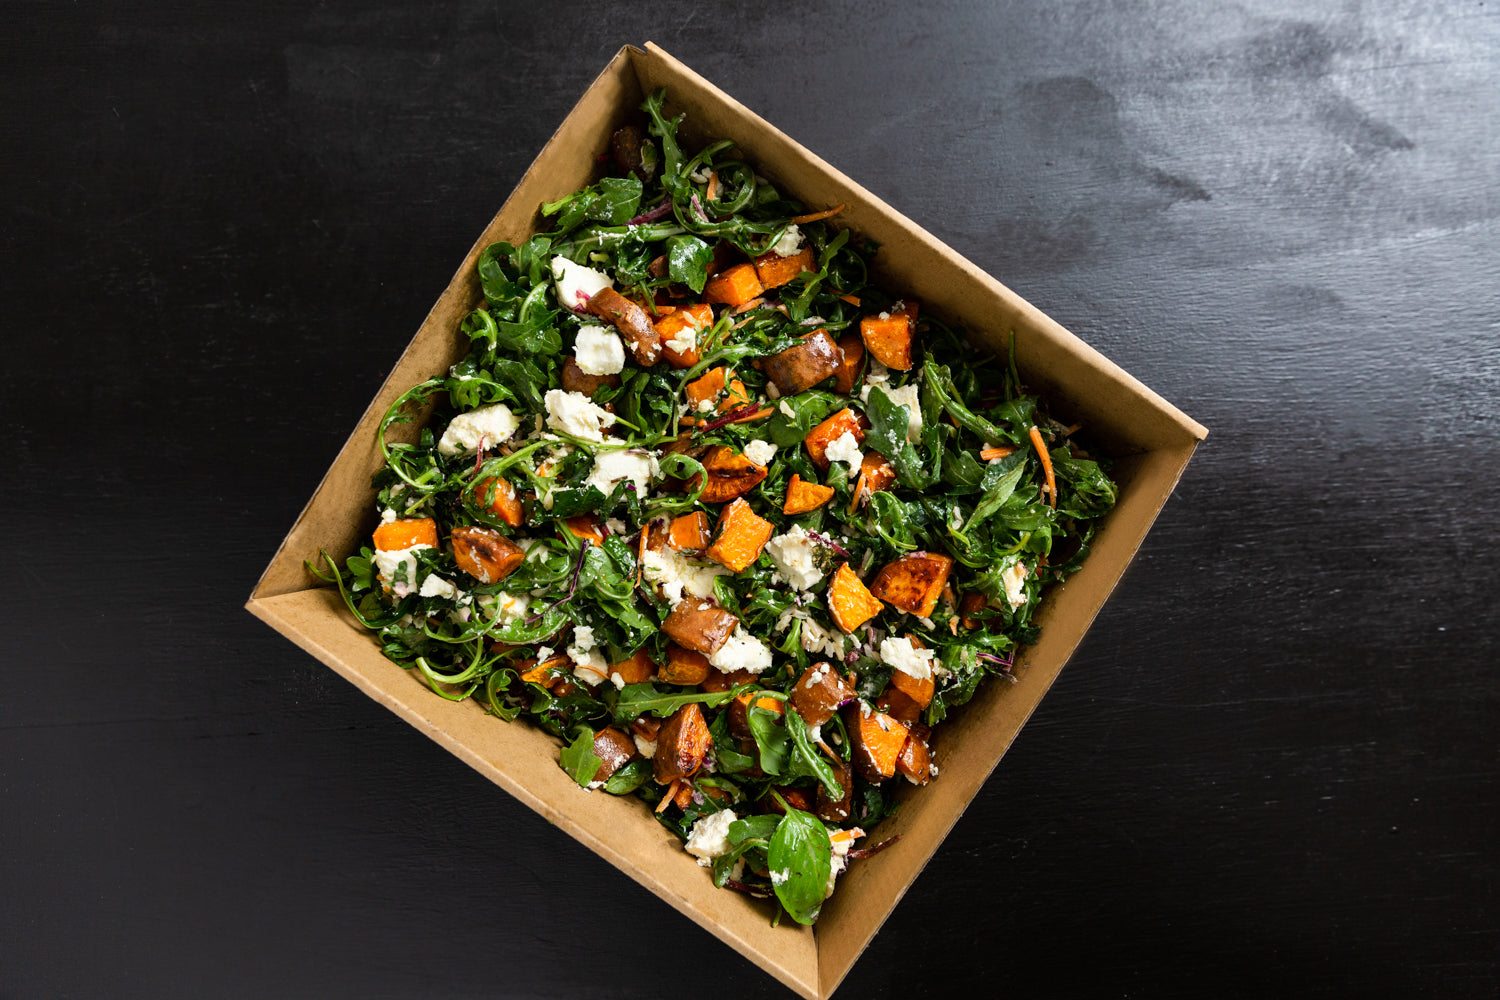 Grazing box- Salad